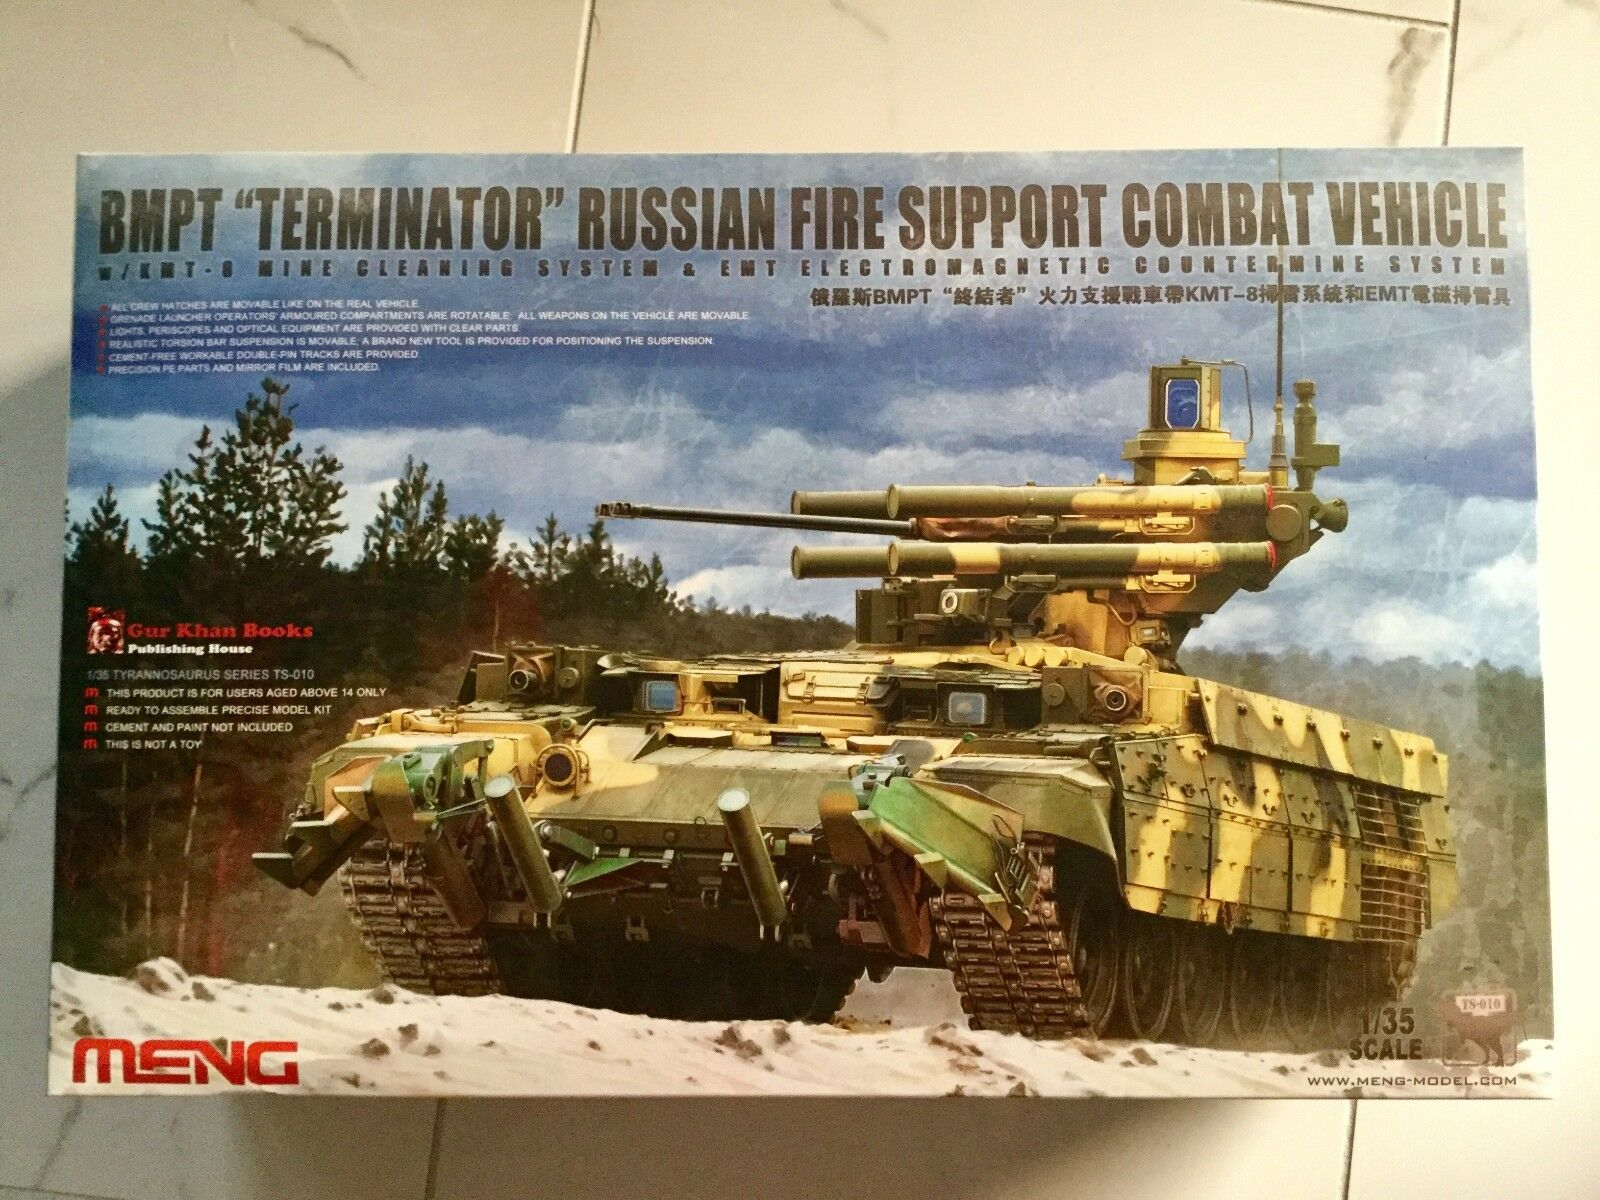 MENG 1 35 RUSSIAN BMPT   TERMINATOR   FIRE SUPPORT COMBAT VEHICLE TS 010 NIB